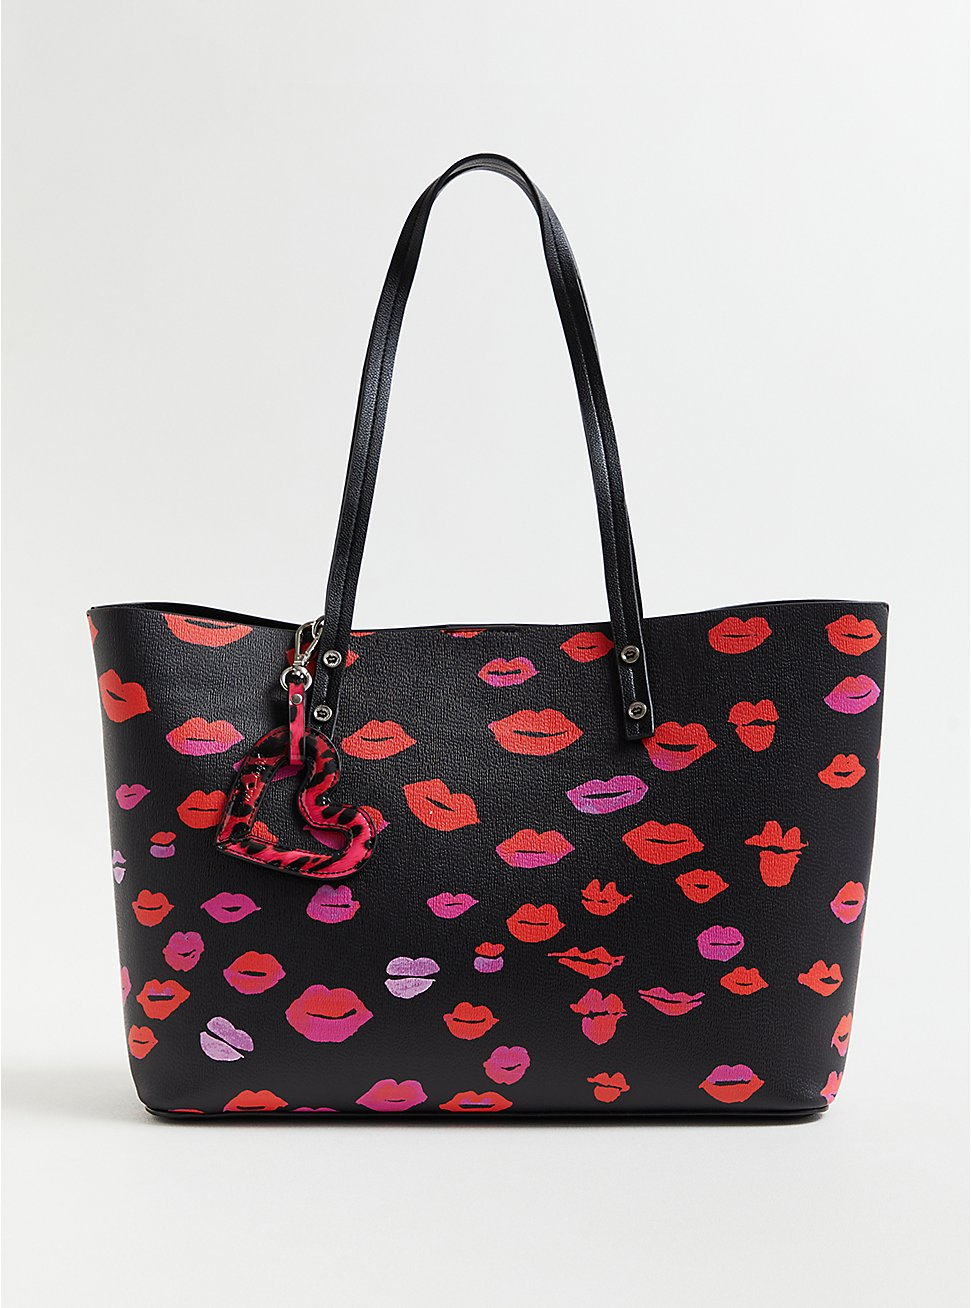 Betsey Johnson Black Lips Tote Bag With Heart Tag, , hi-res